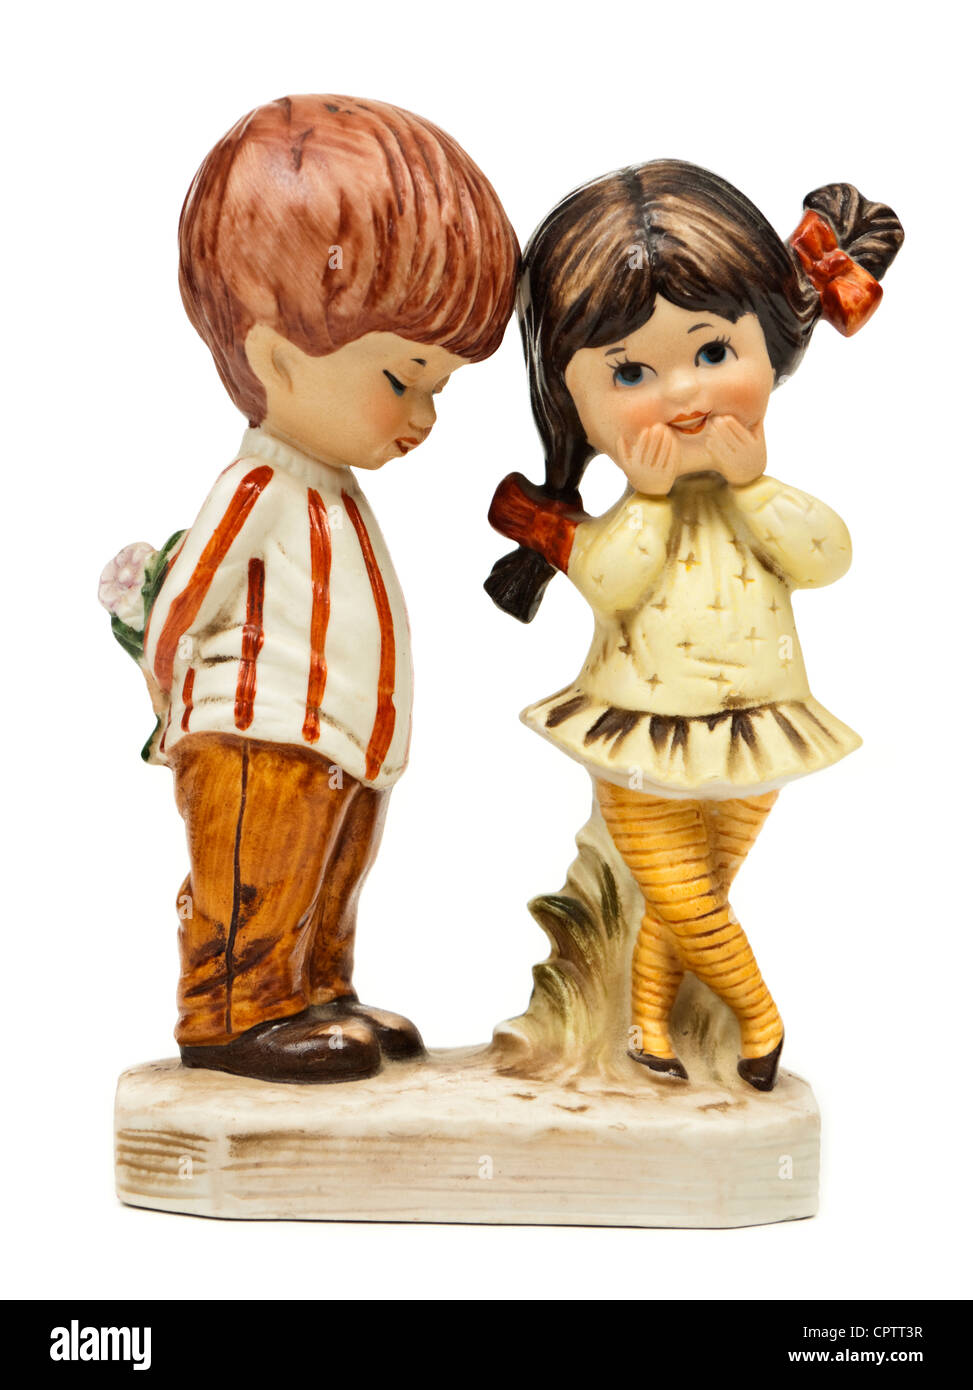 Vintage early 1970's 'Moppets' boy and girl figurine by Fran Mar - Stock Image